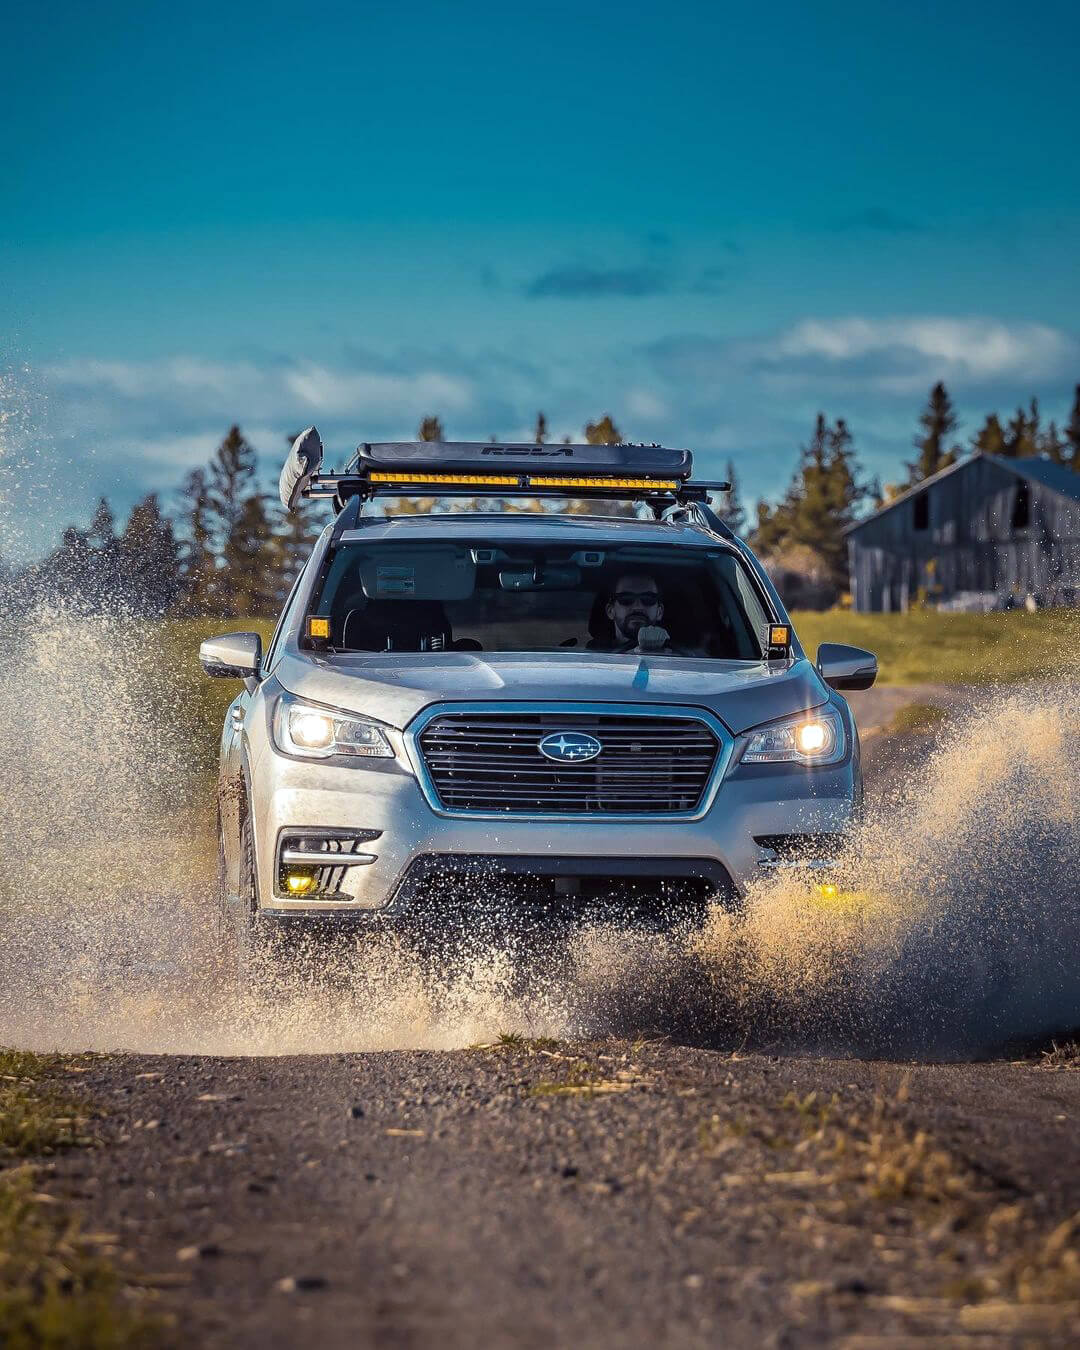 Lifted Subaru Ascent overland off-road project